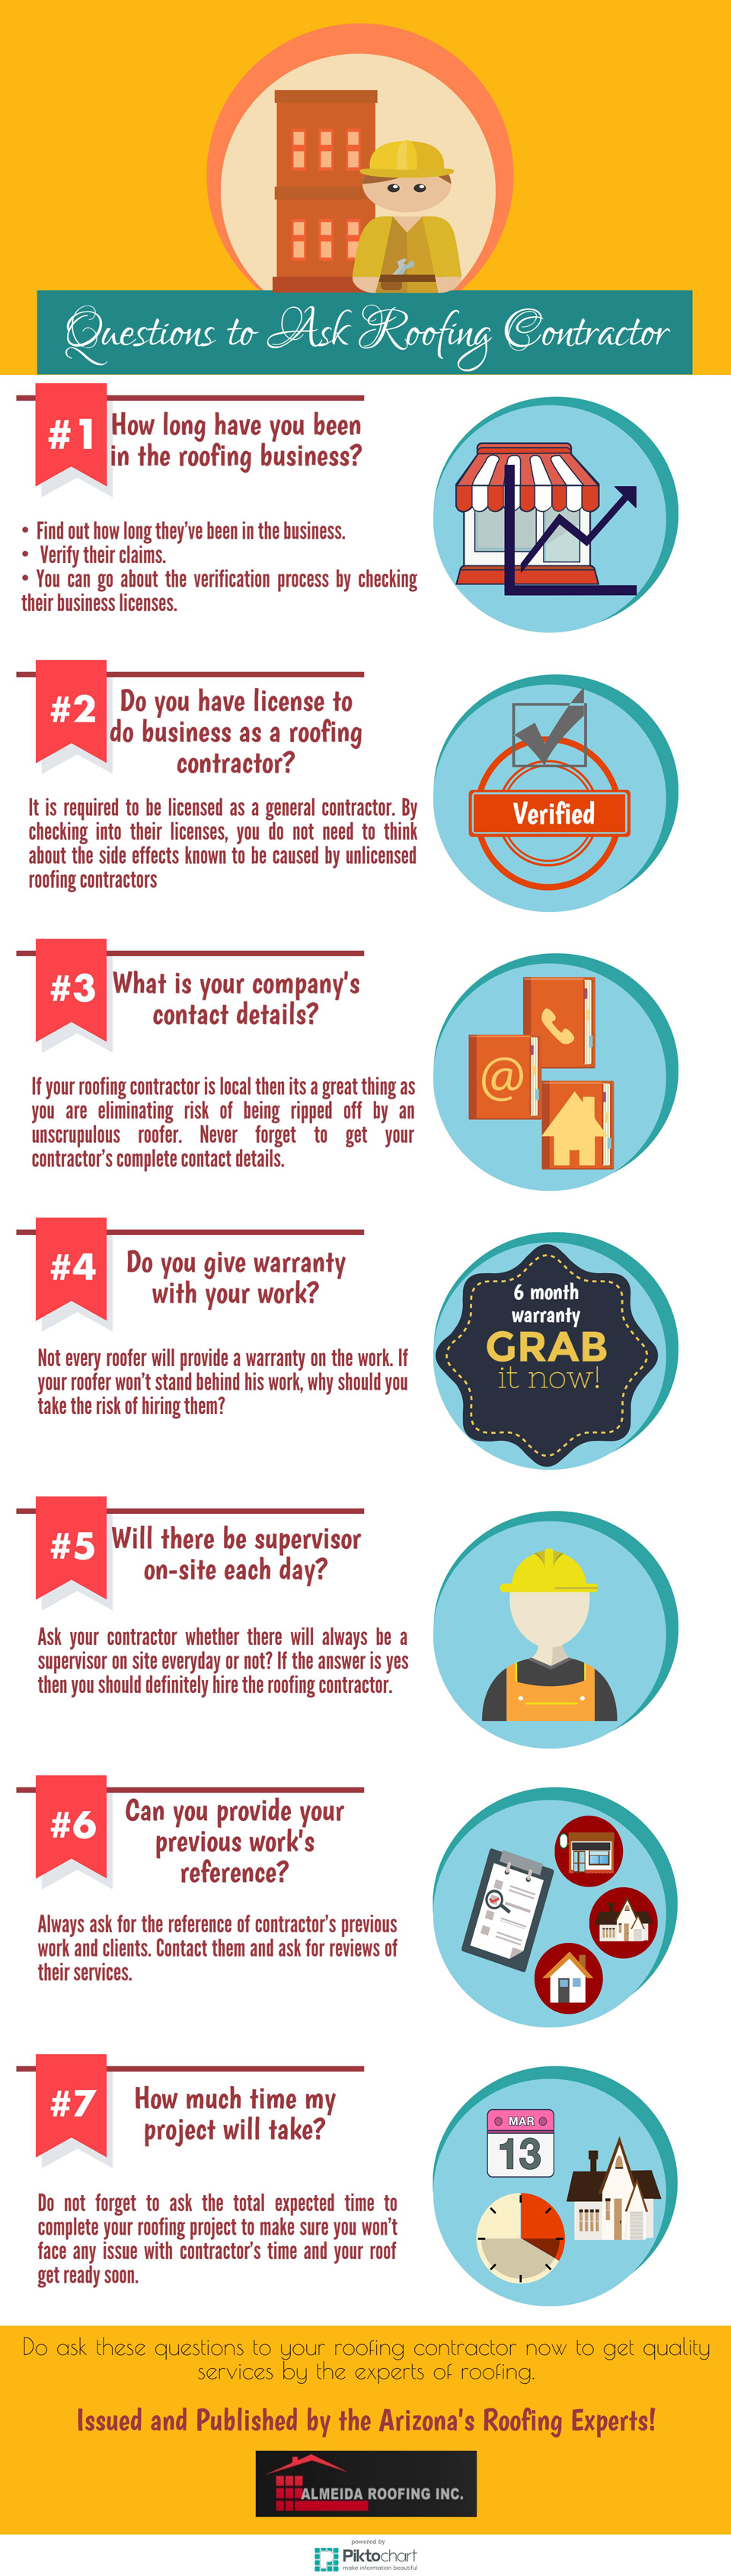 questions-to-ask-roofing-contractor-infographic